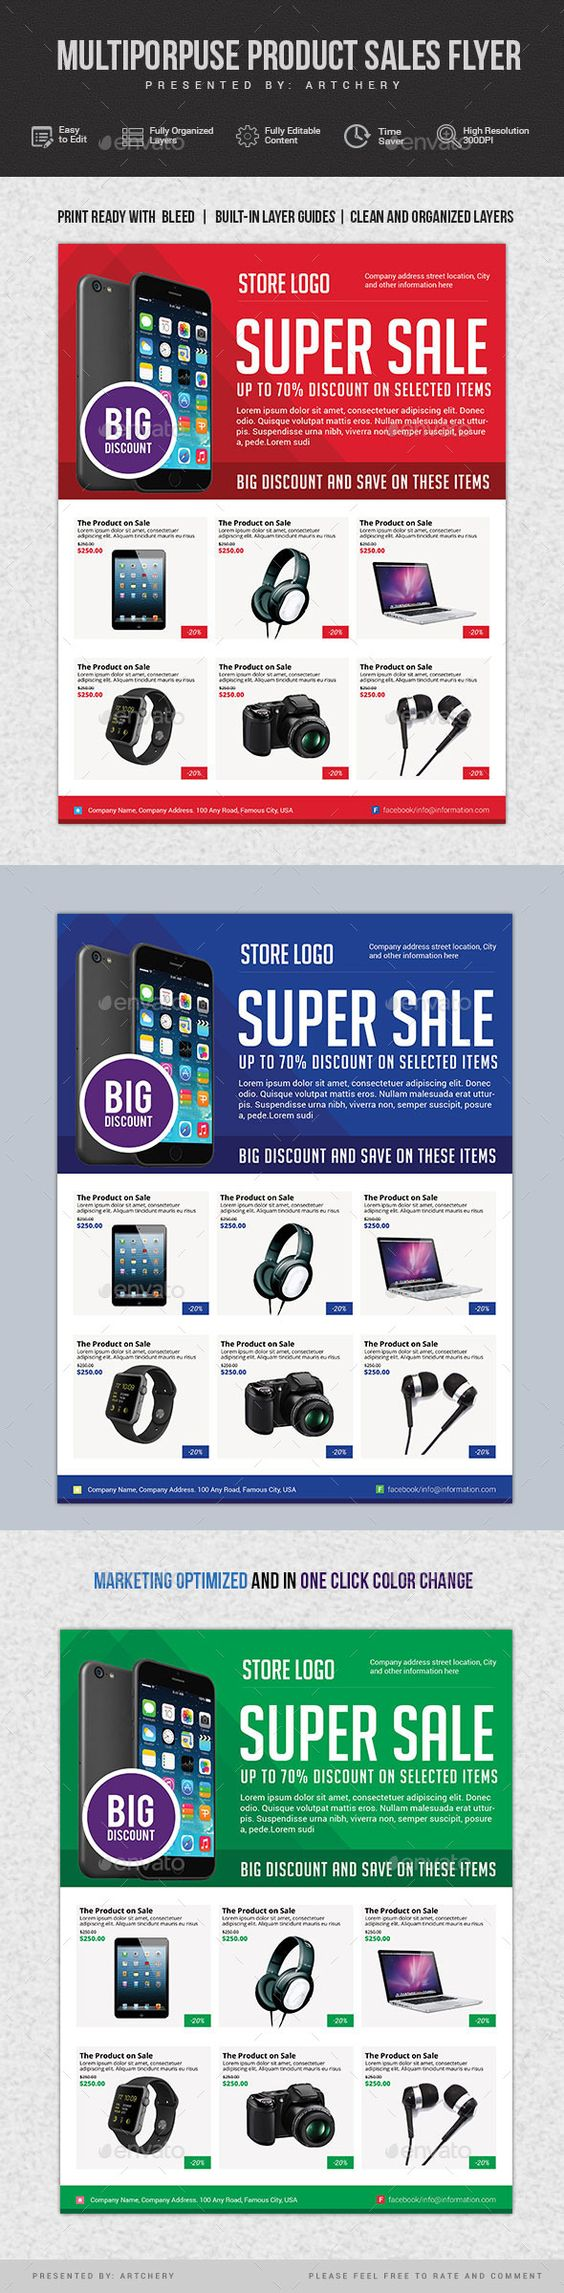 flyer template products and flyers multiporpuse product s flyer template design graphicriver net